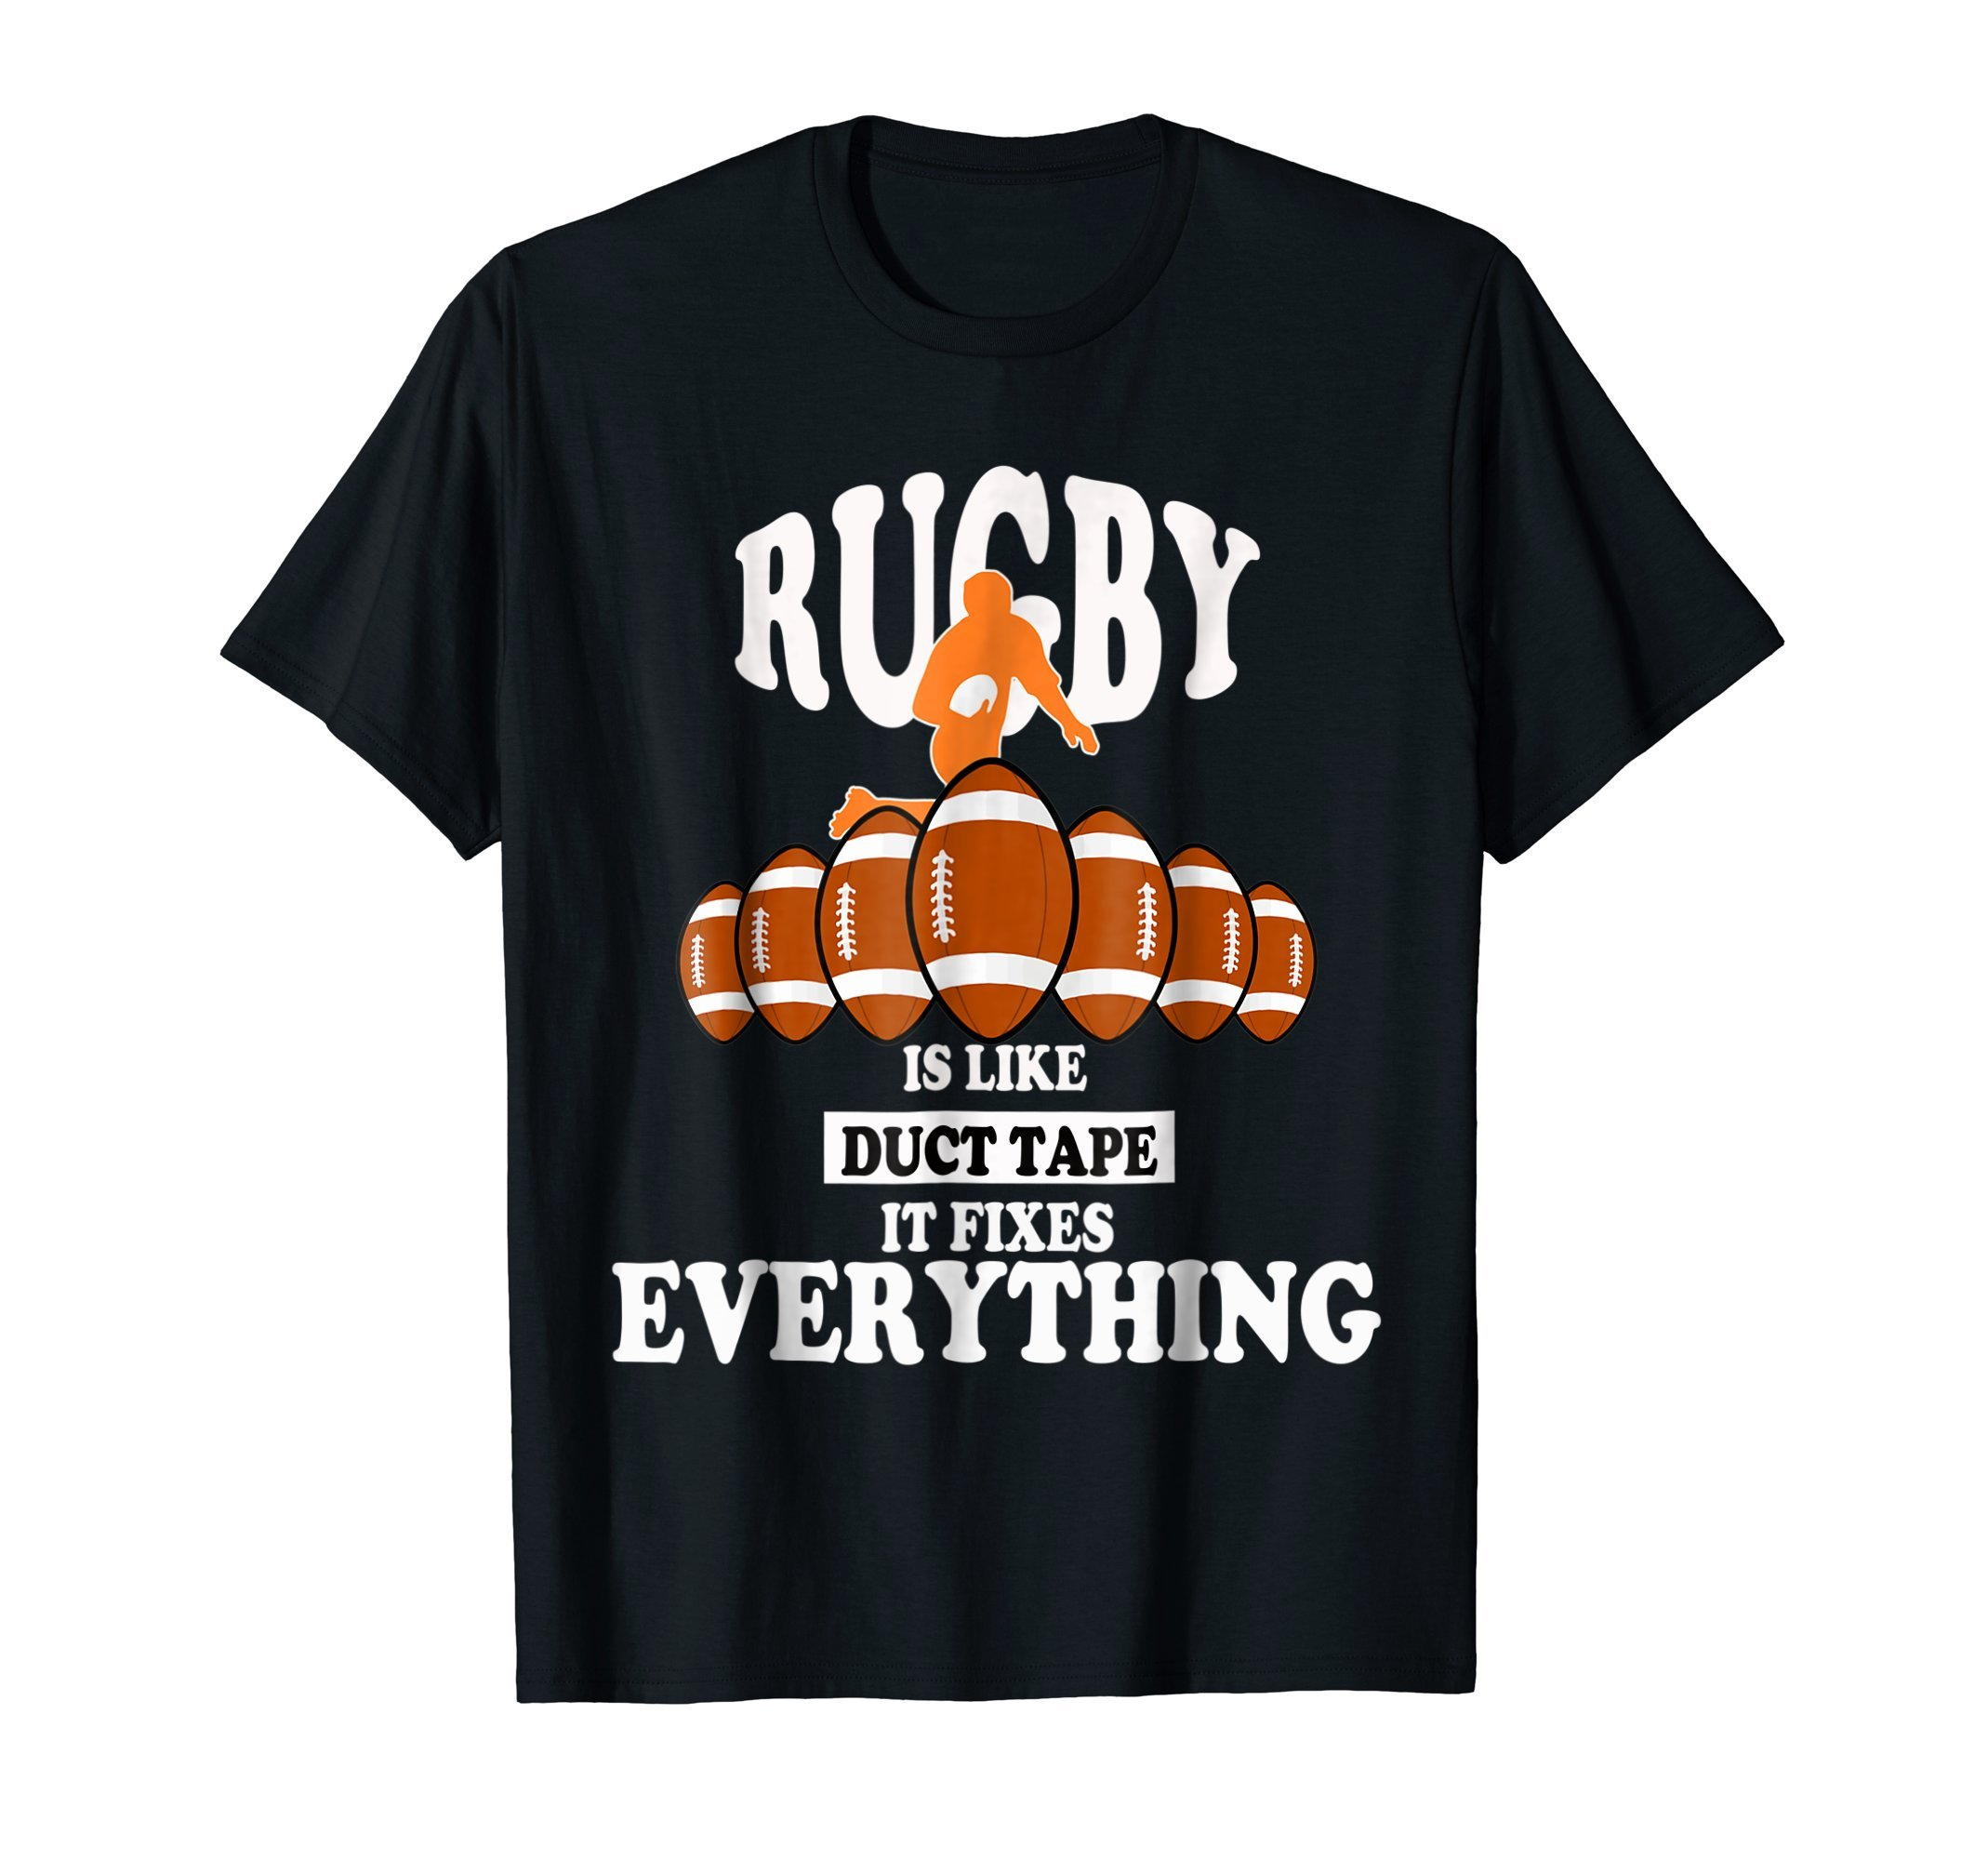 Rugby is like duct tape it fixes Everything shirt